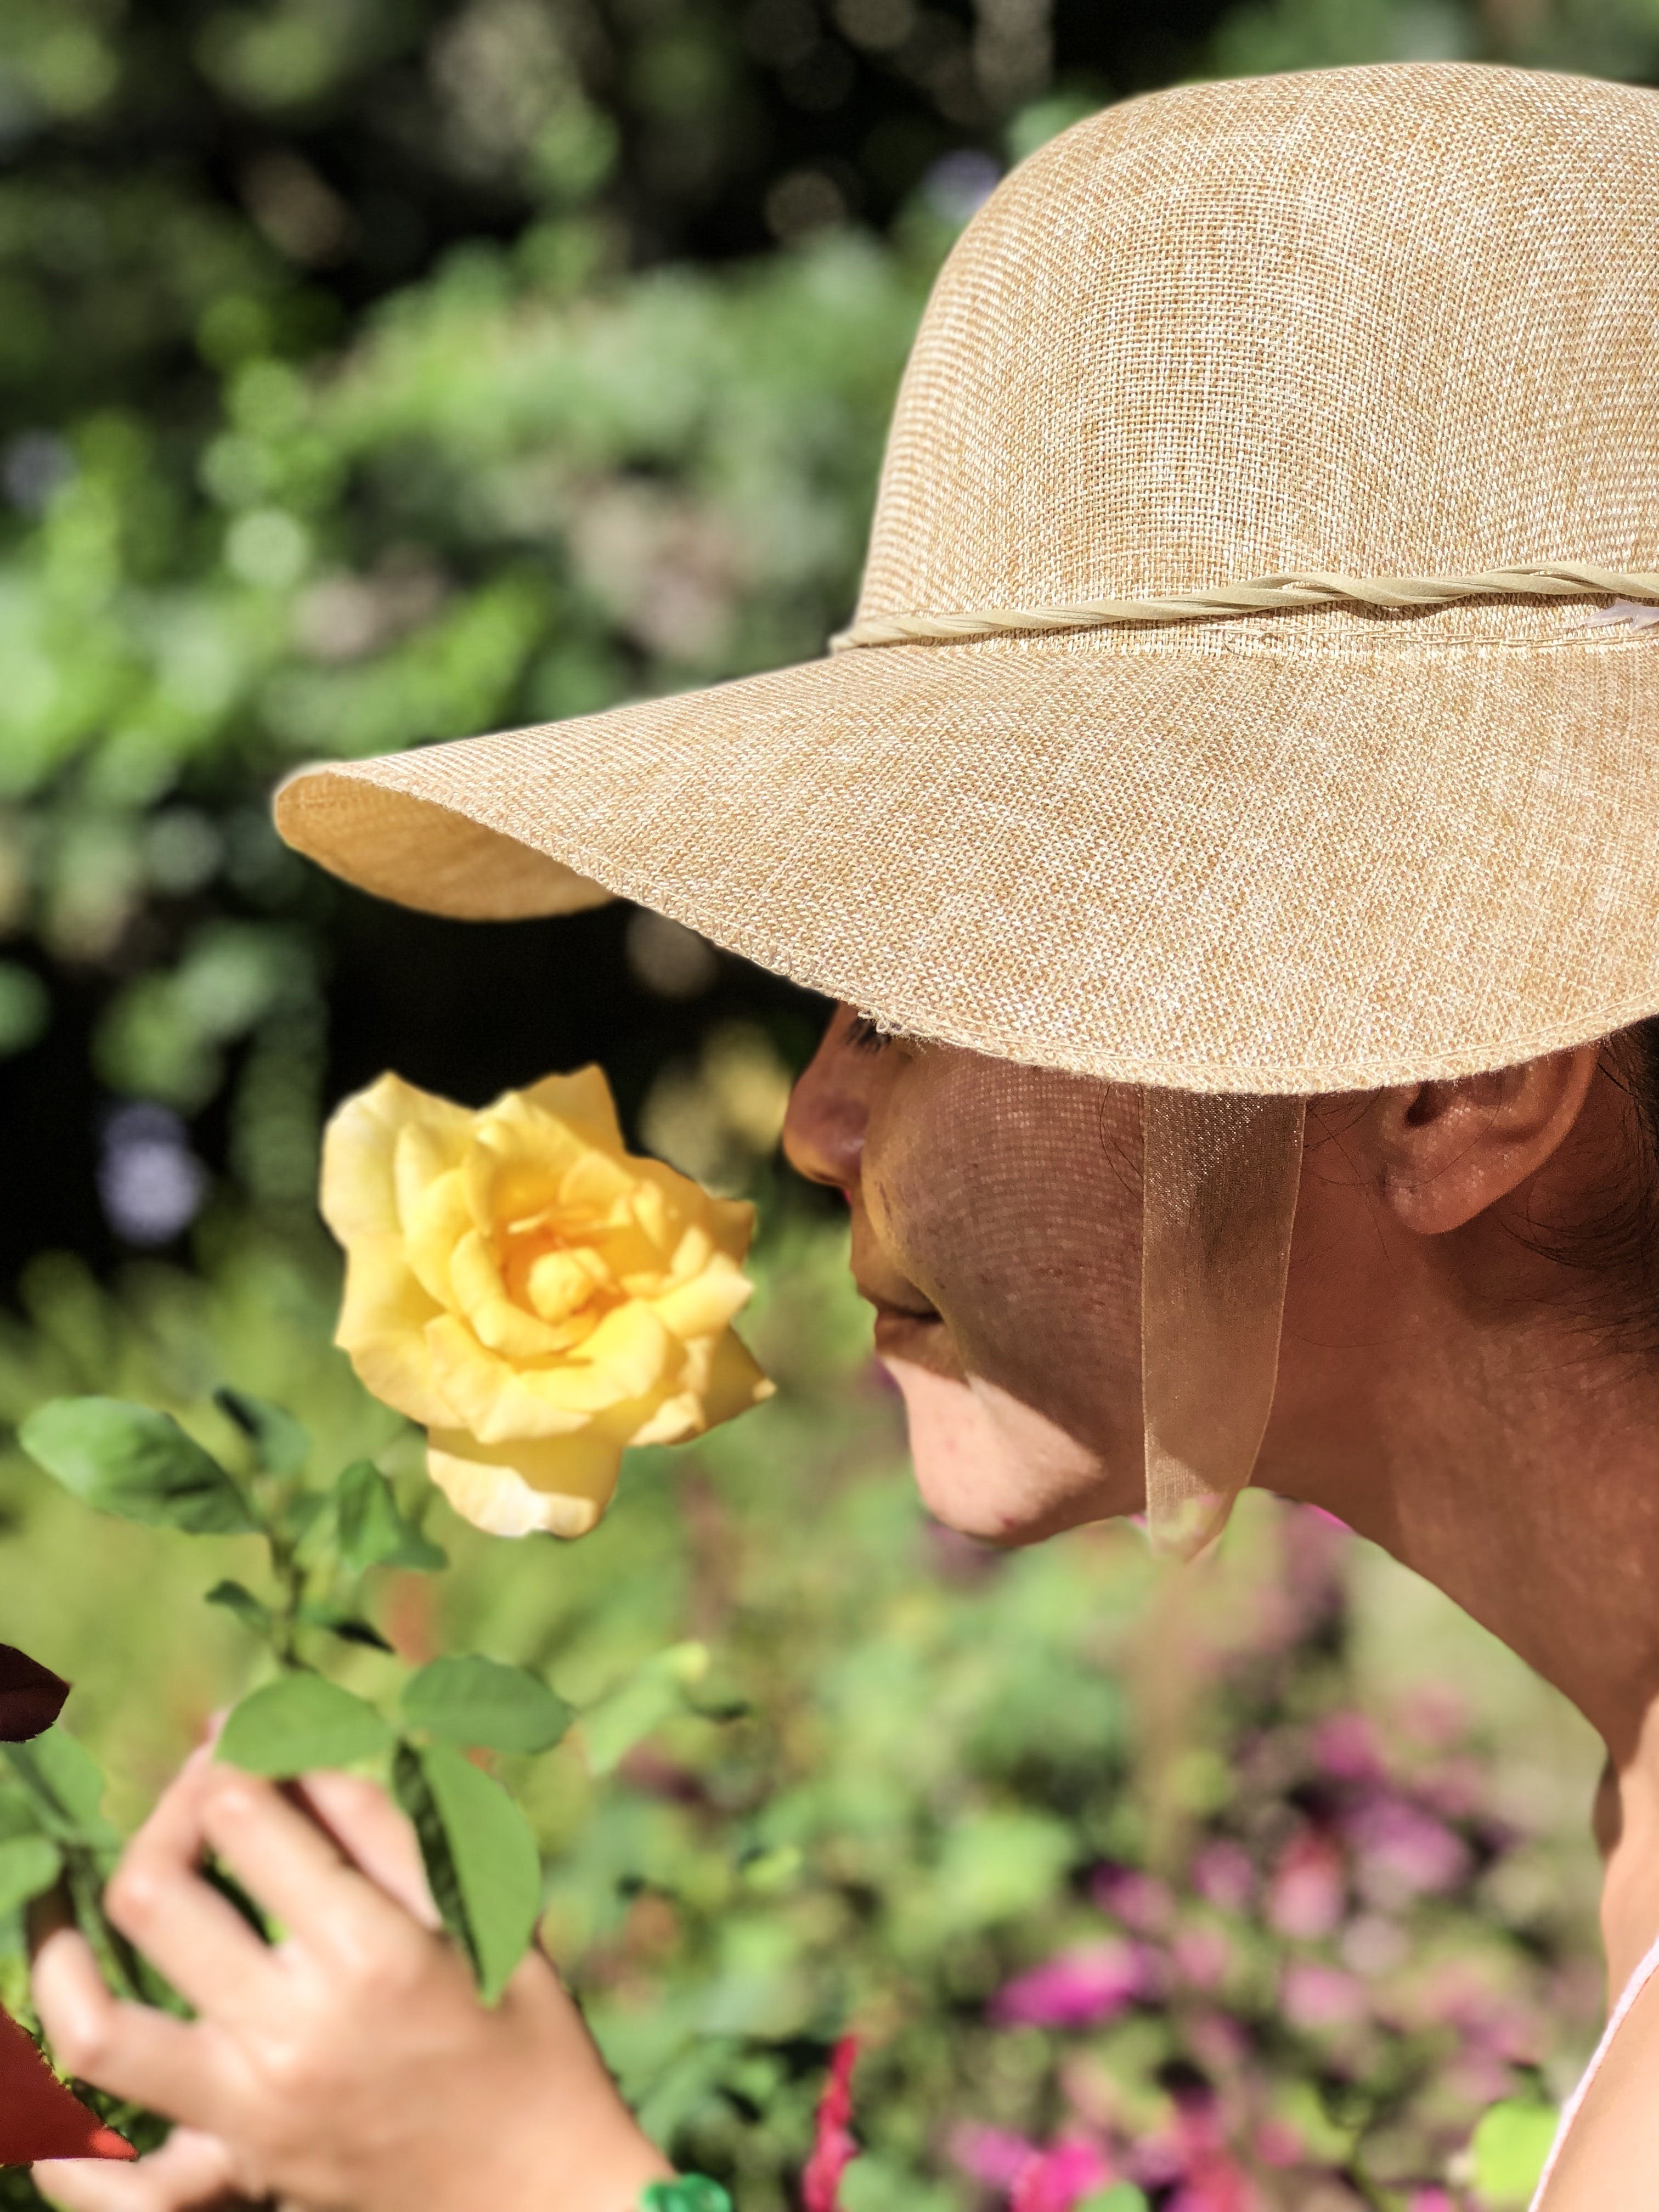 Woman Wearing Sun Hat Smelling Yellow Rose